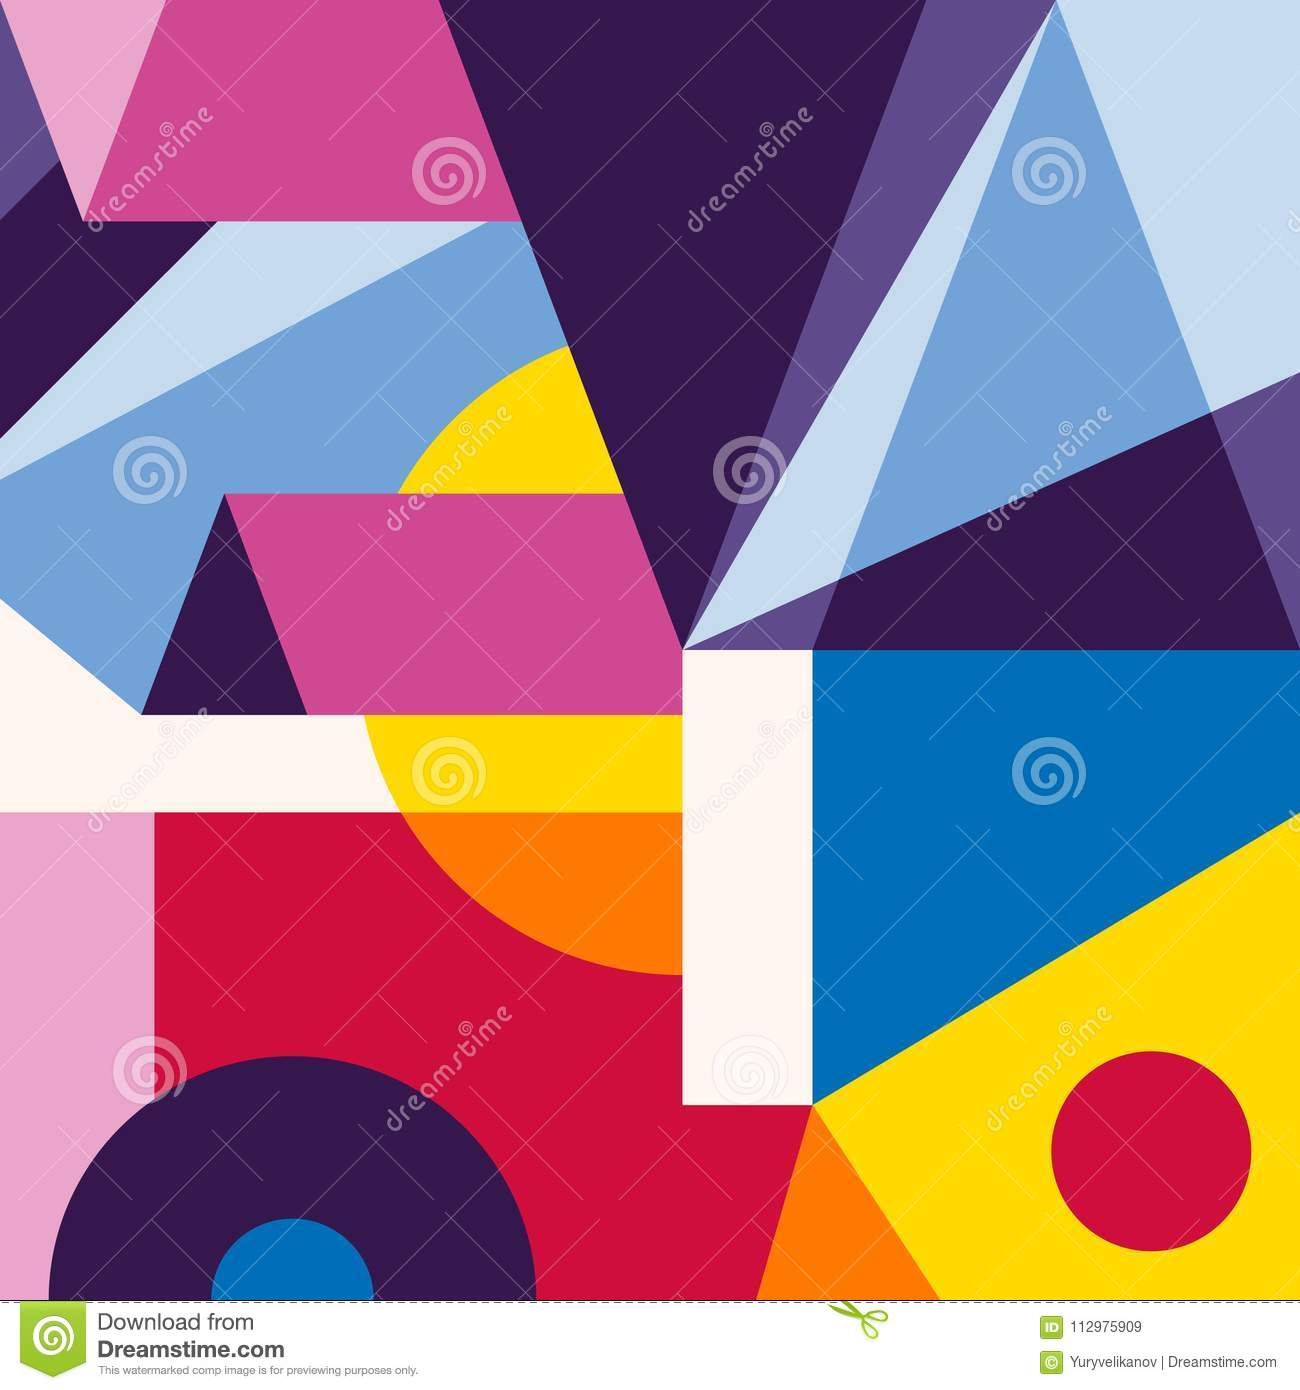 Abstract trendy modern geometric background. Composition 4